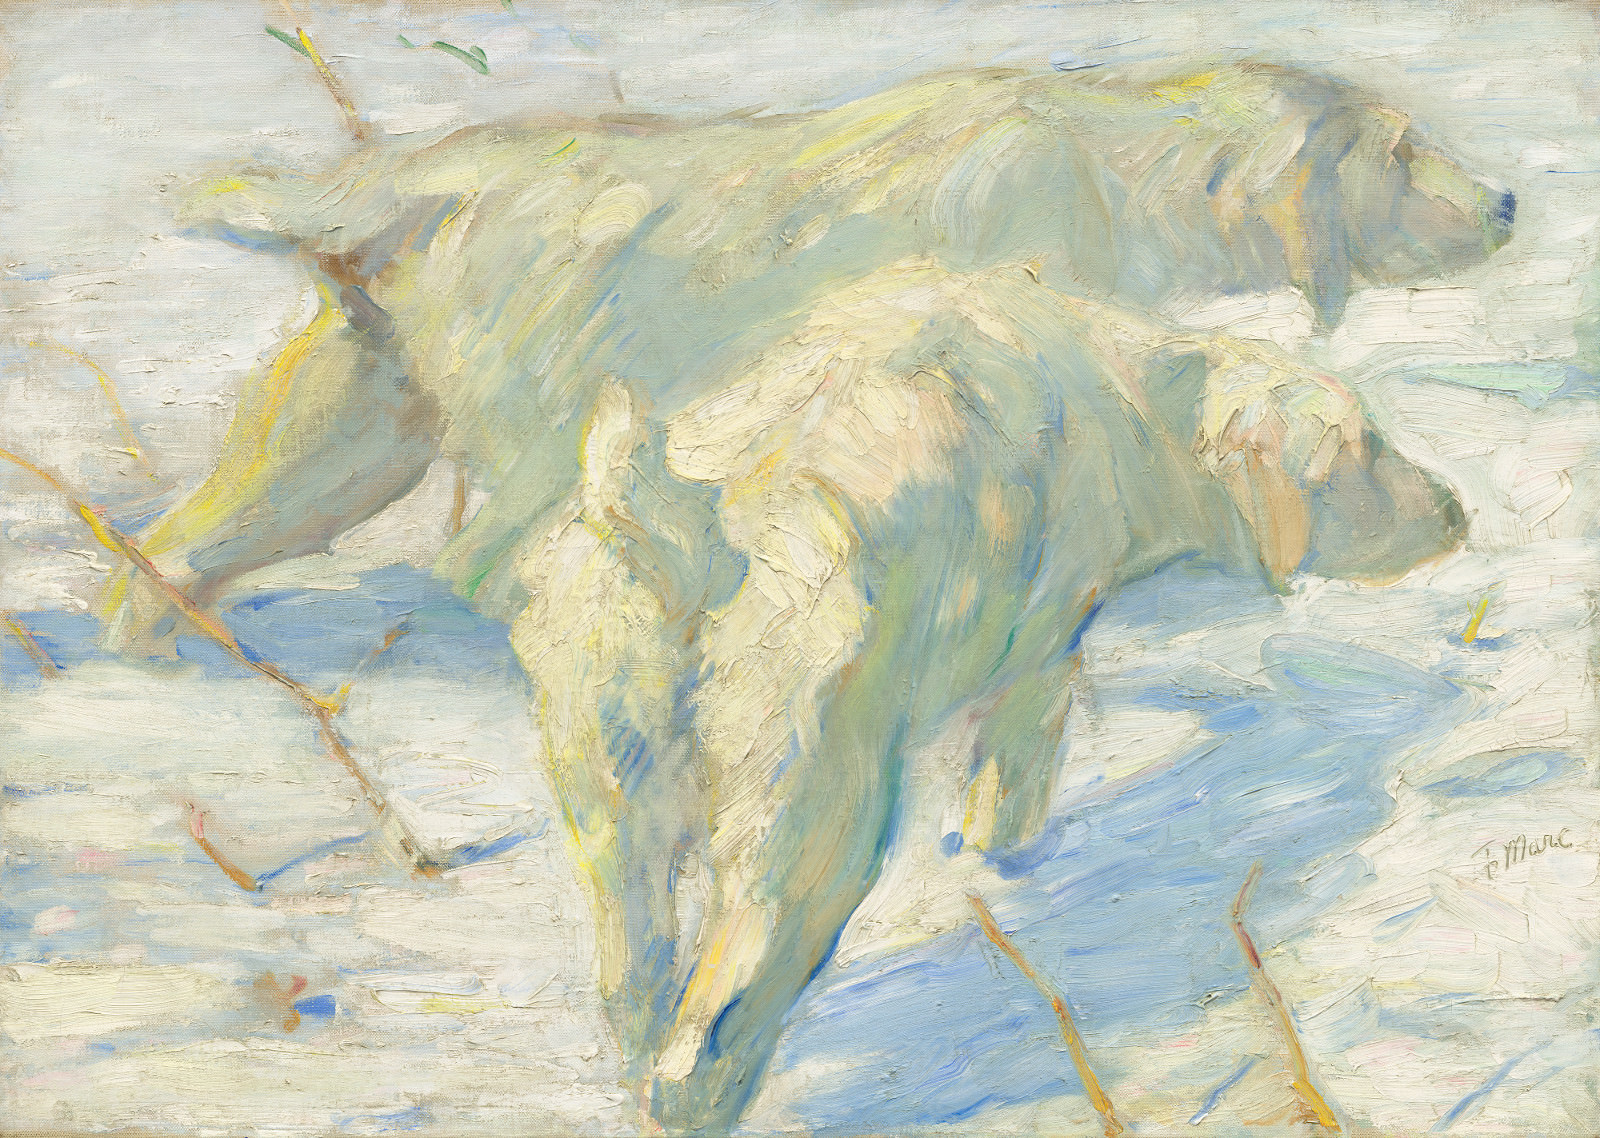 Fig. 11 – Cães Siberianos na Neve, Franz Marc, 1909/1910, óleo sobre tela, 80,5 x 114 cm. National Gallery of Art, Washington. Presente de Mr. e Mrs. Stephen M. Kellen.